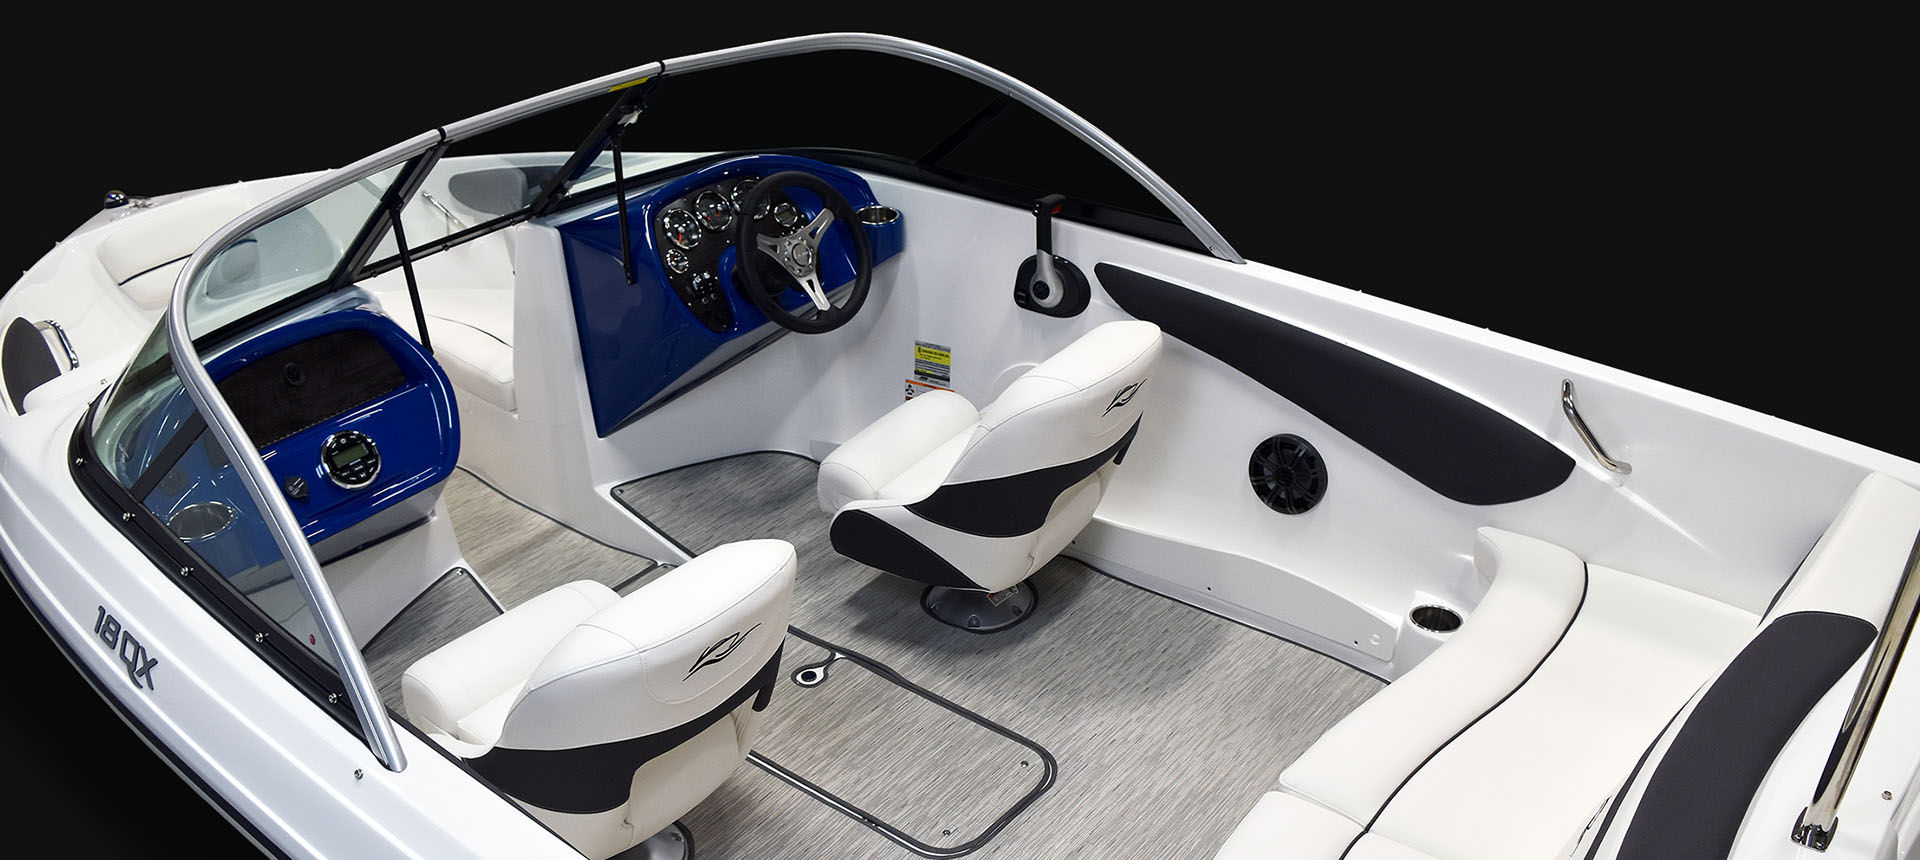 Pic of 18QX Outboard boat interior